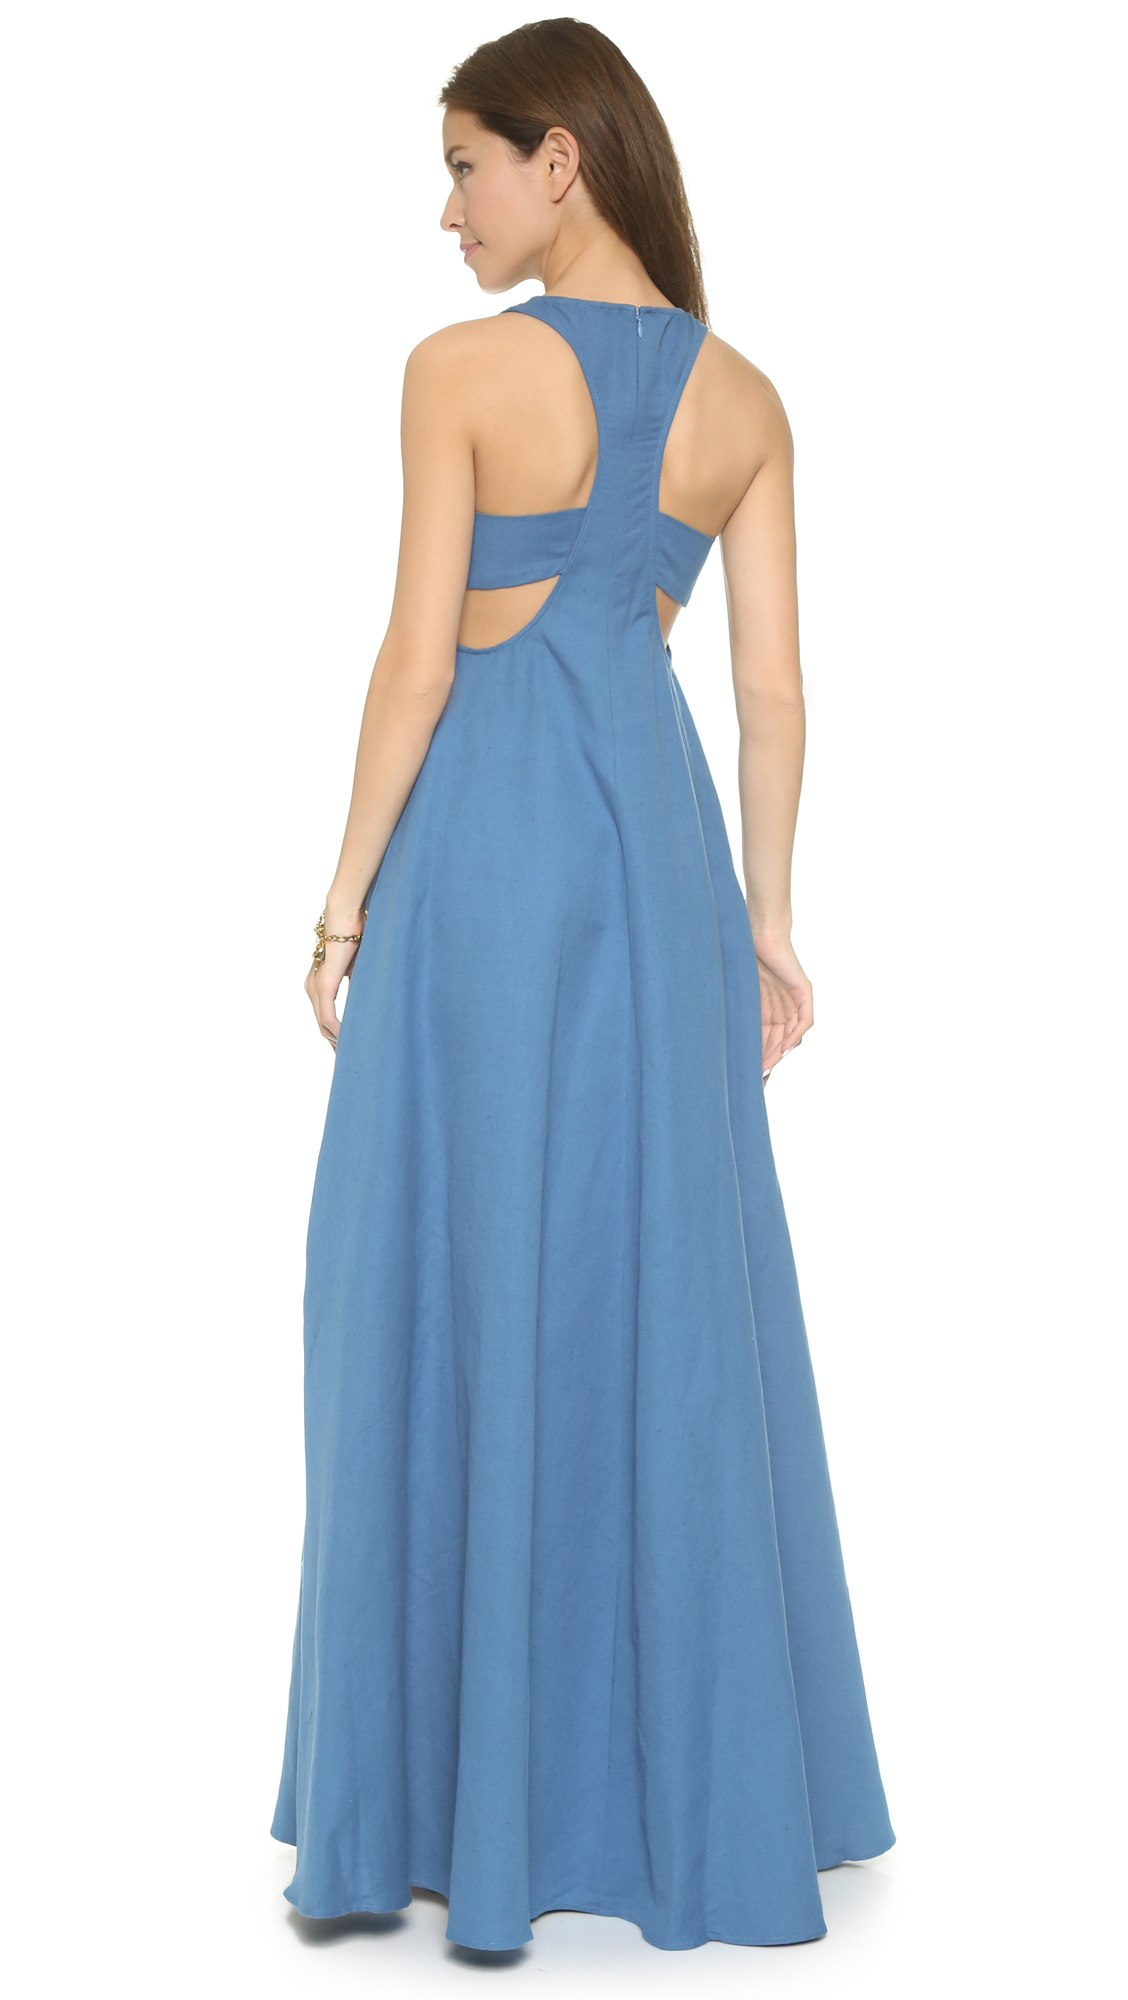 Lyst - Mara Hoffman Embroidered Cutout Dress - Electrolight Stone in ...